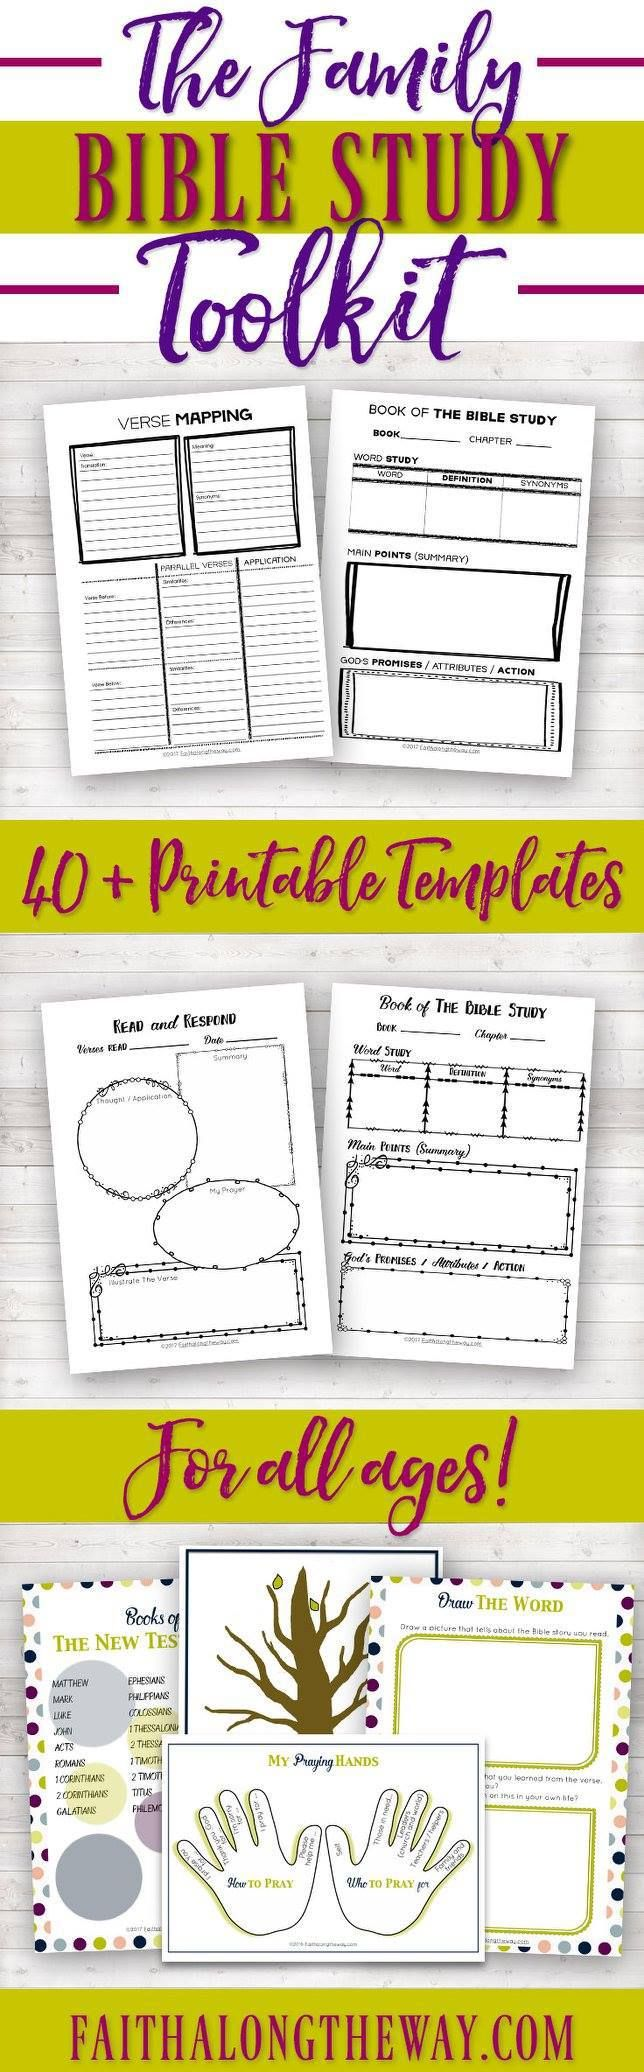 How to find time in the Word;16 best tips for overwhelmed moms. Bible study doesn't have to be hard. Any mom can fit time in the Word with these simple tips